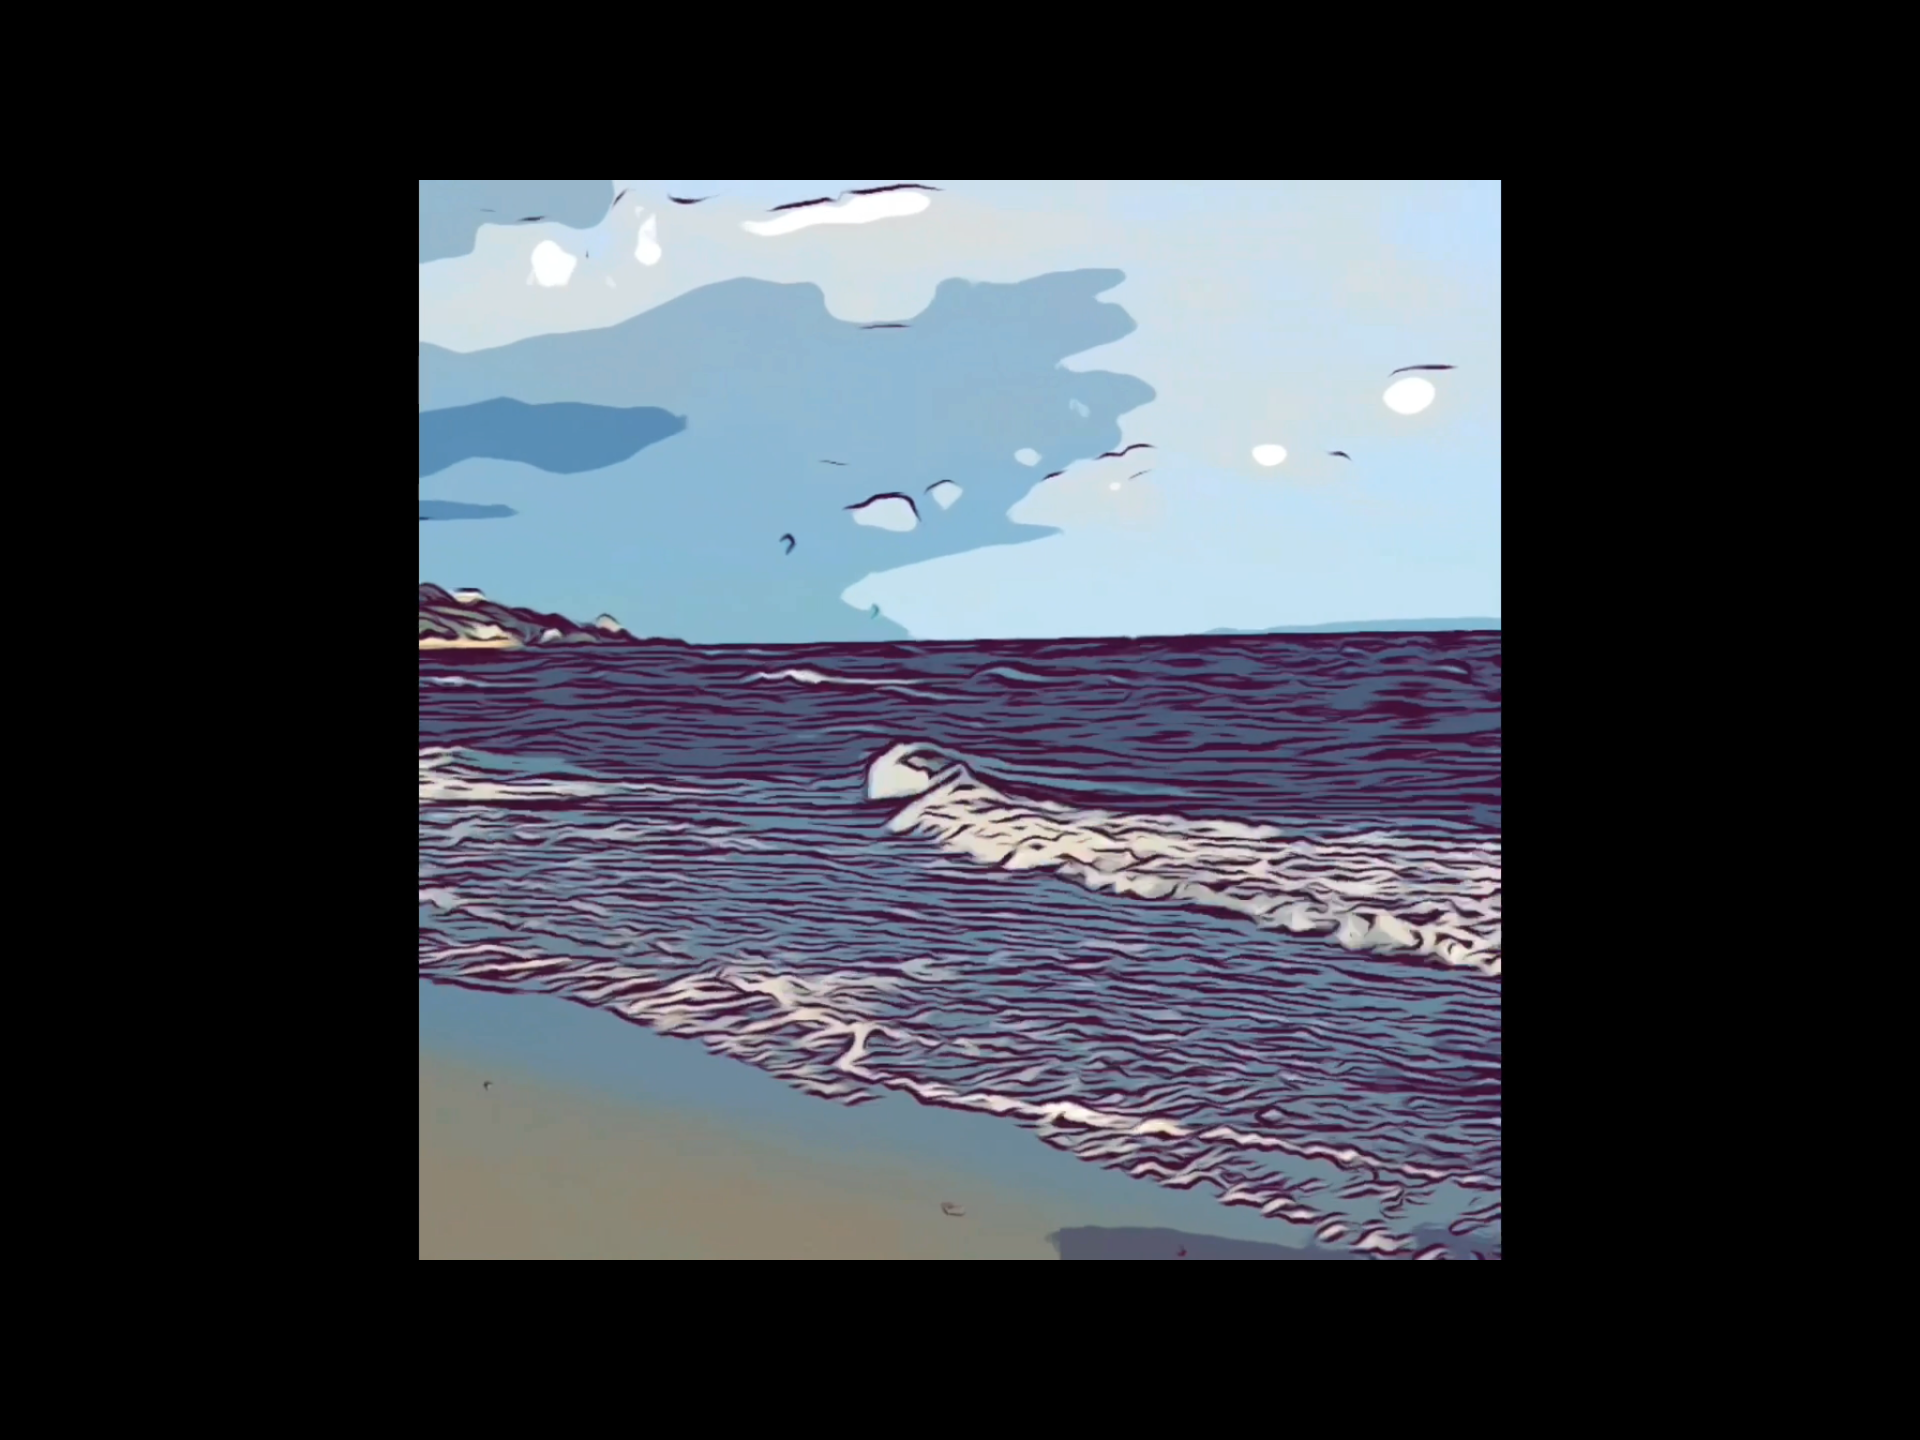 Moving image of a windy beach walk with a short dance interpretation. Inspired by the birds and kite surfers.